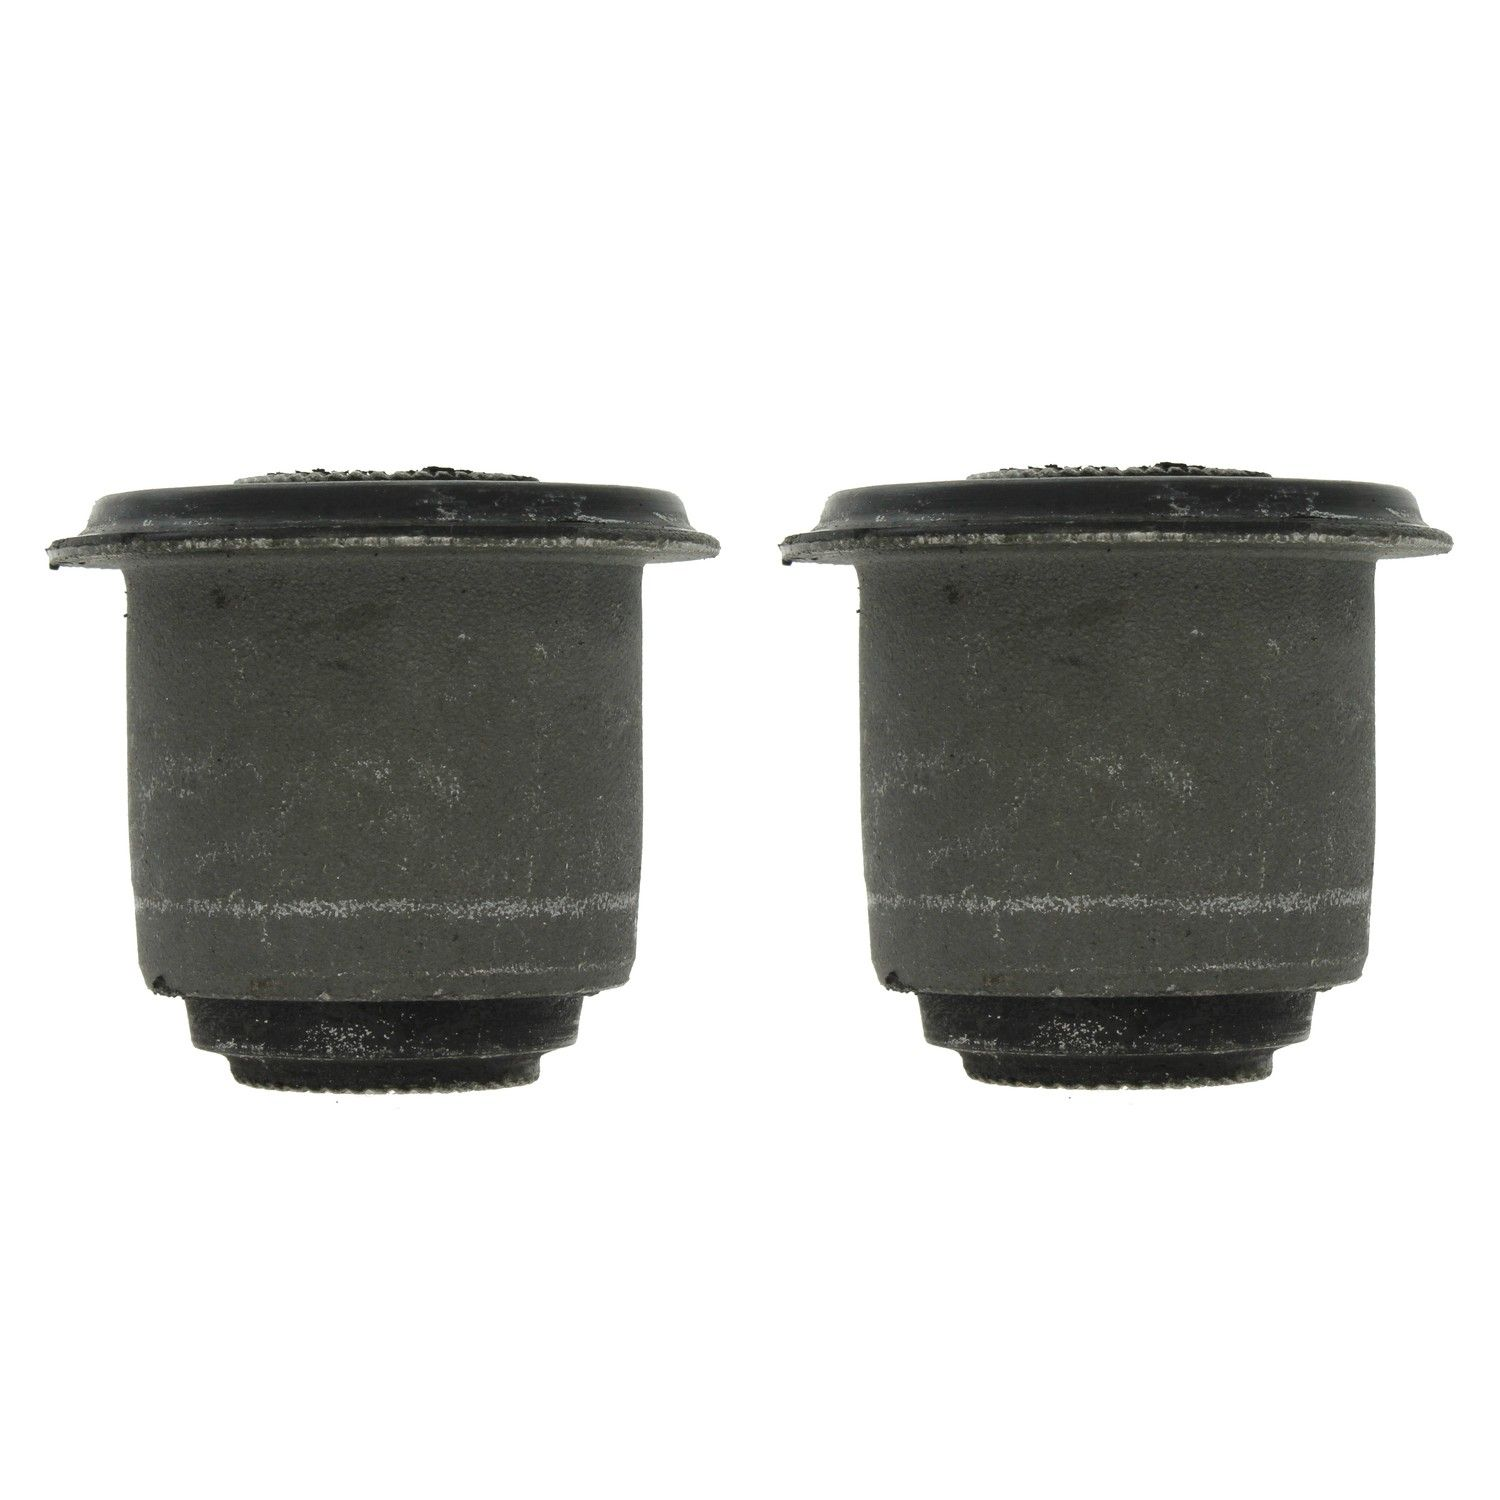 Isuzu Rodeo Suspension Control Arm Bushing Replacement Beck Arnley 1999 Parts 1991 Front Upper Centric 60240020 Bushings